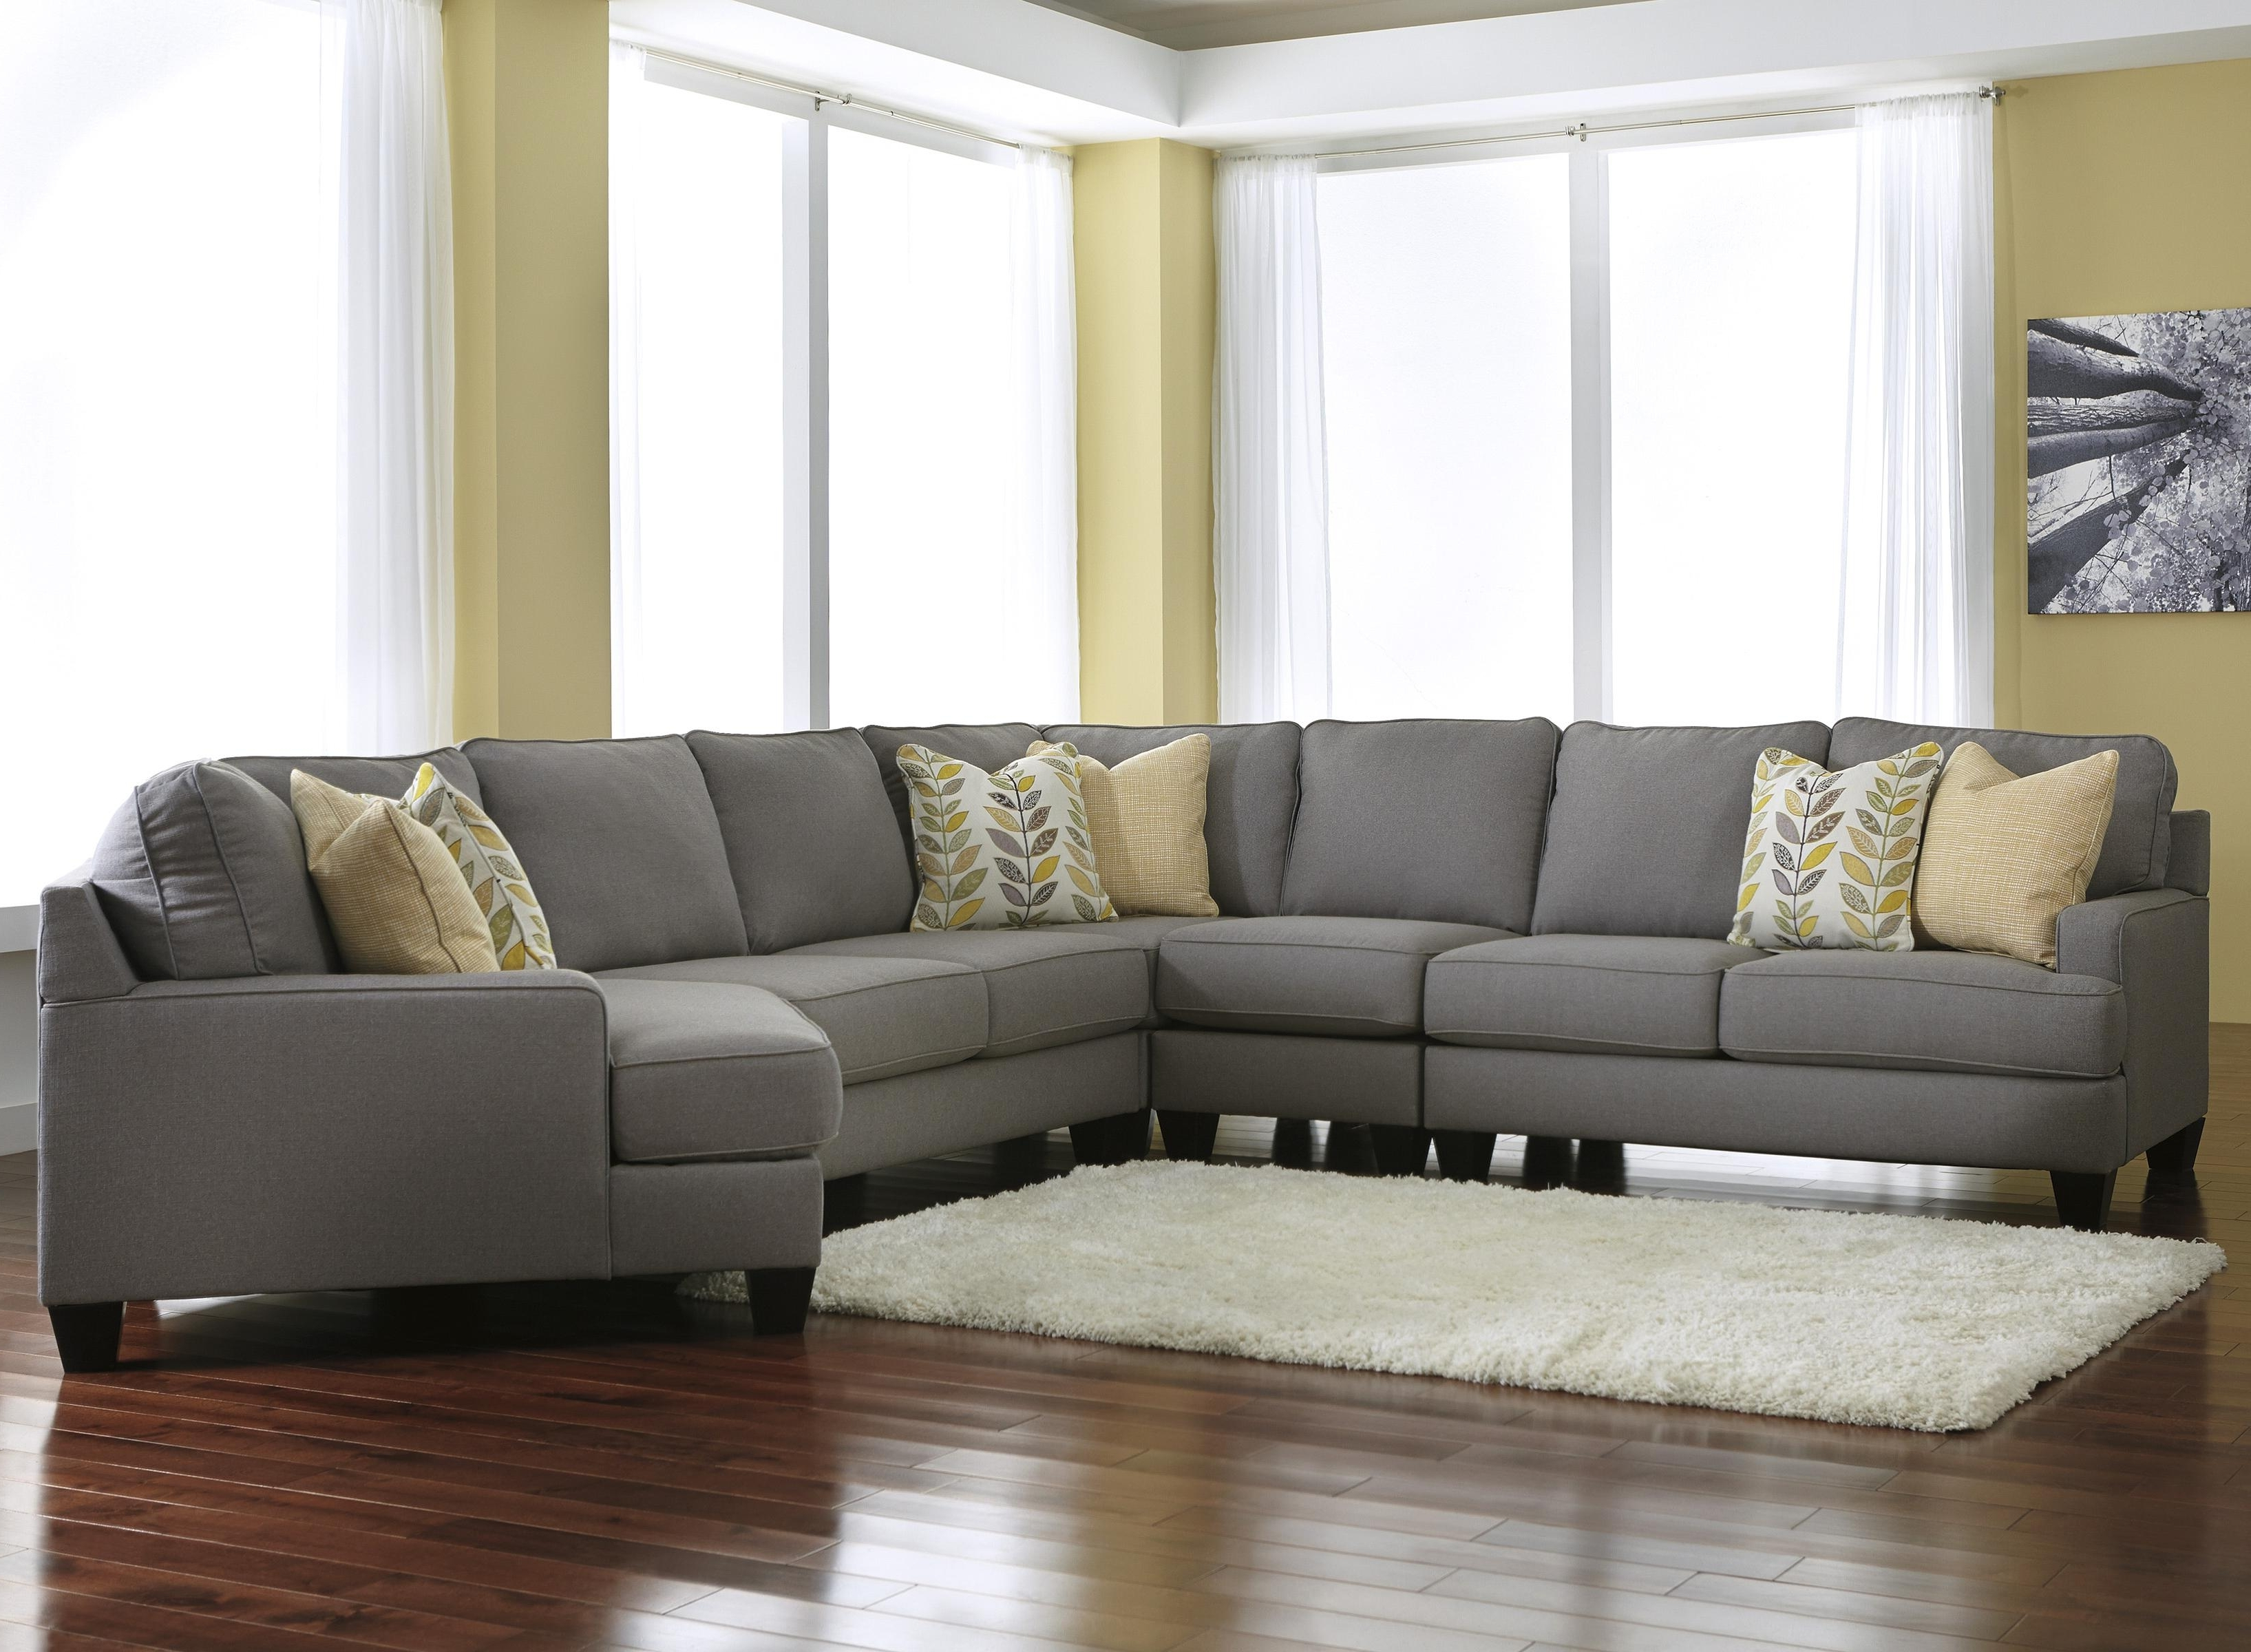 Sectional Sofas That Can Be Rearranged Intended For Famous Sofa : Logan Sectional Sofa Setashley Furniture Ashley (View 16 of 20)